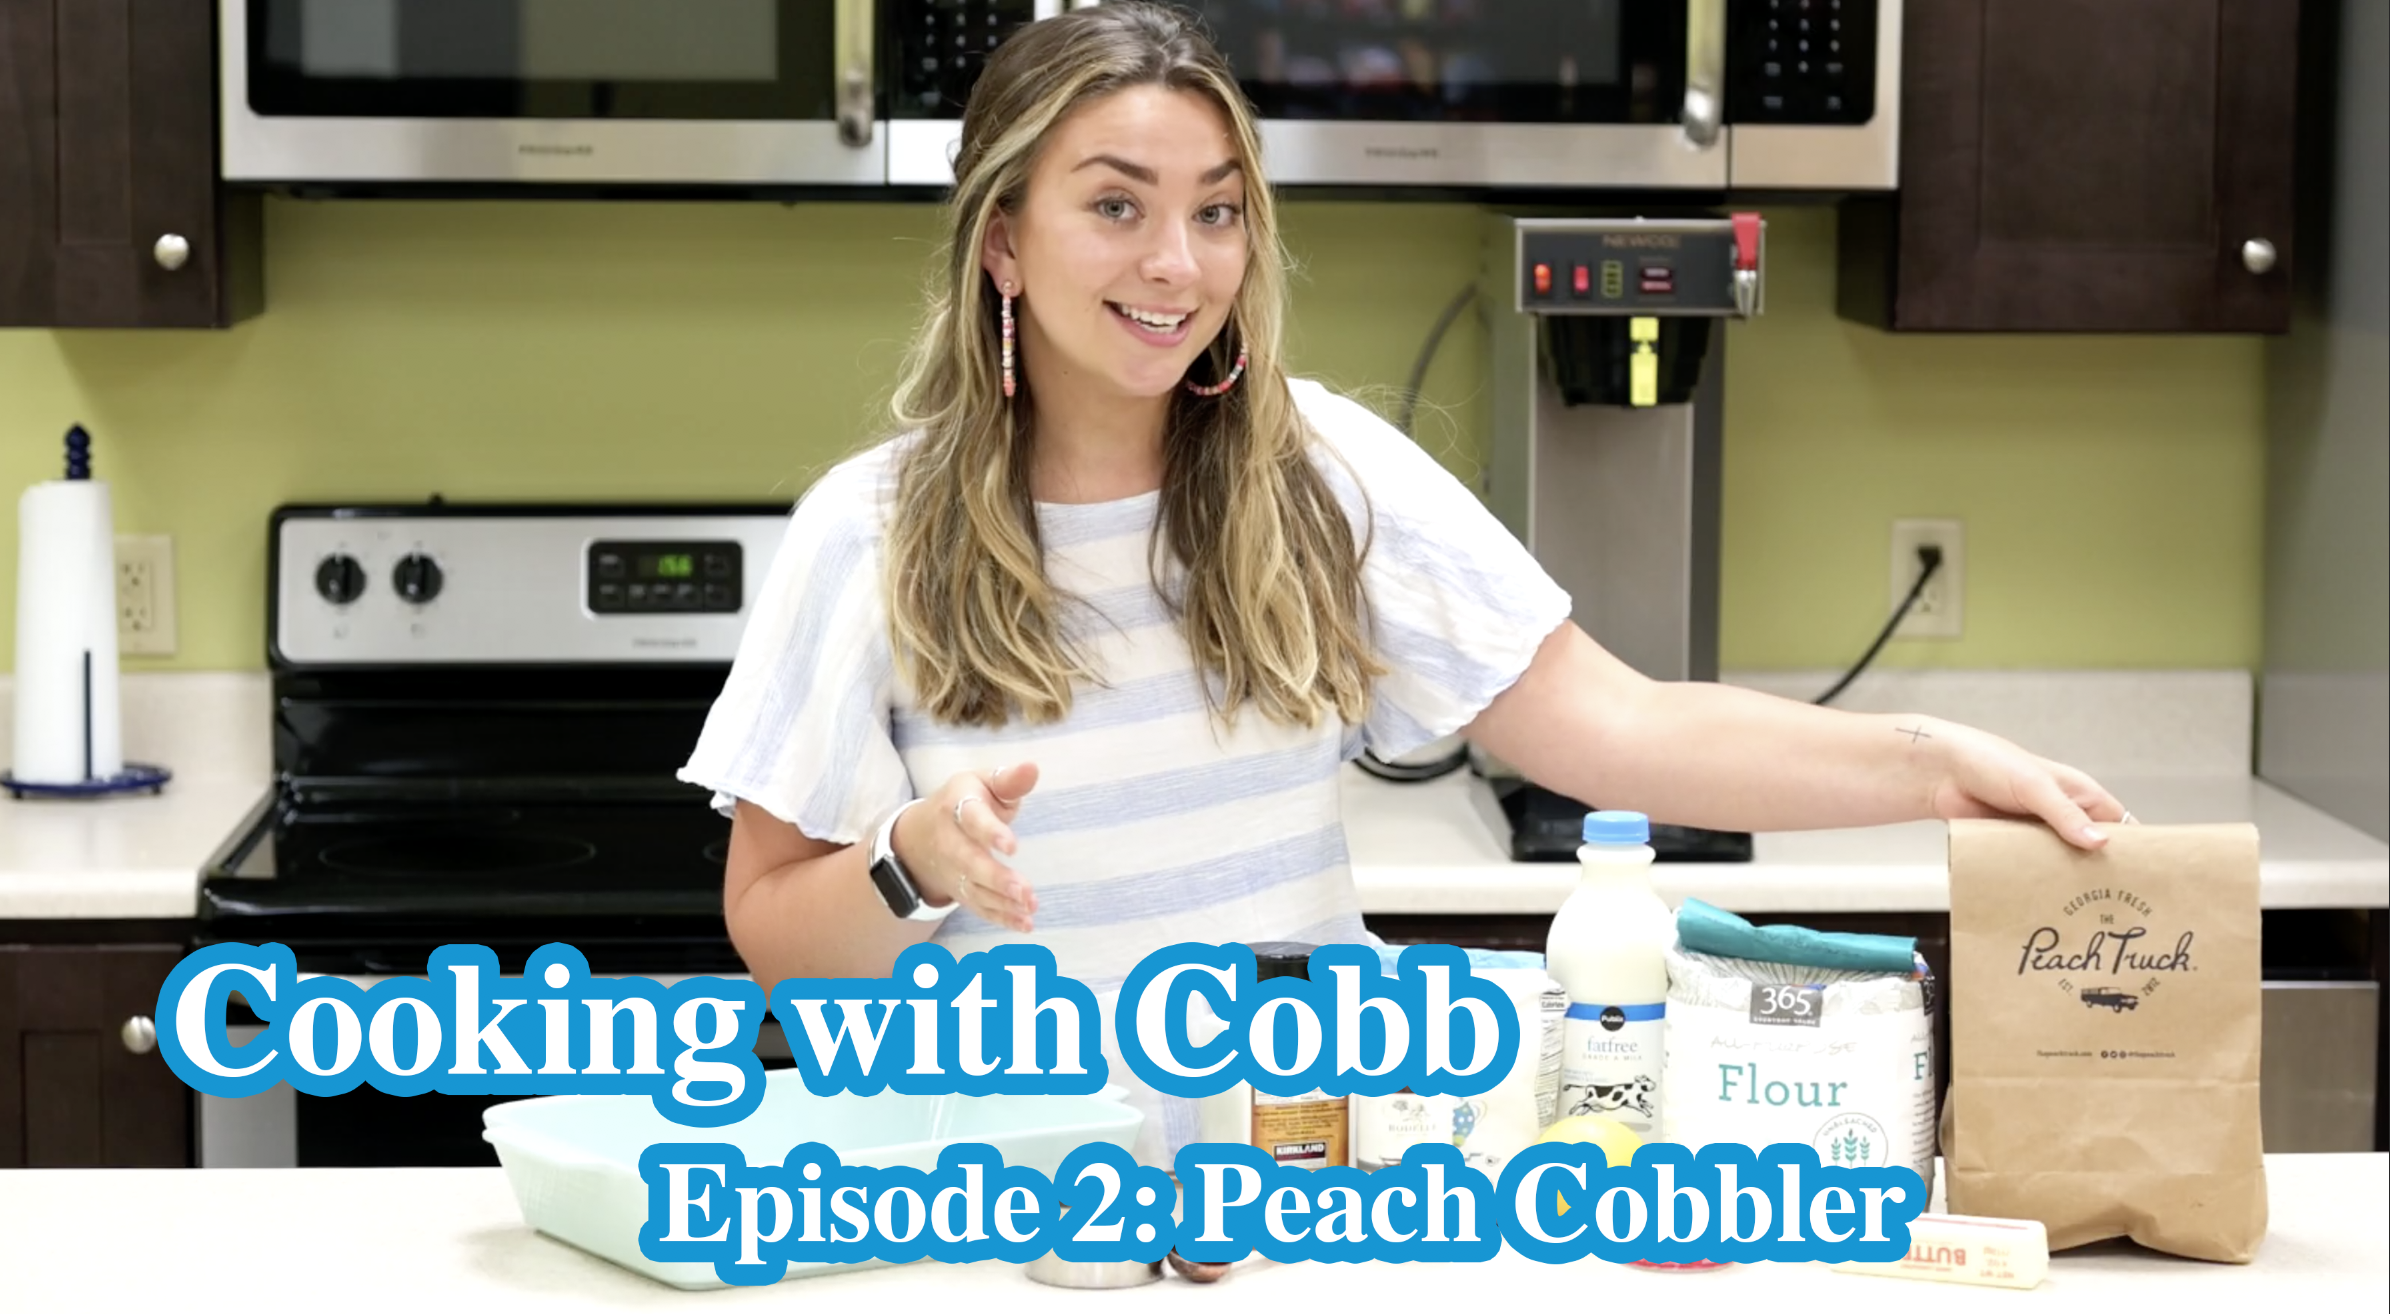 Cooking With Cobb - Peach Cobbler